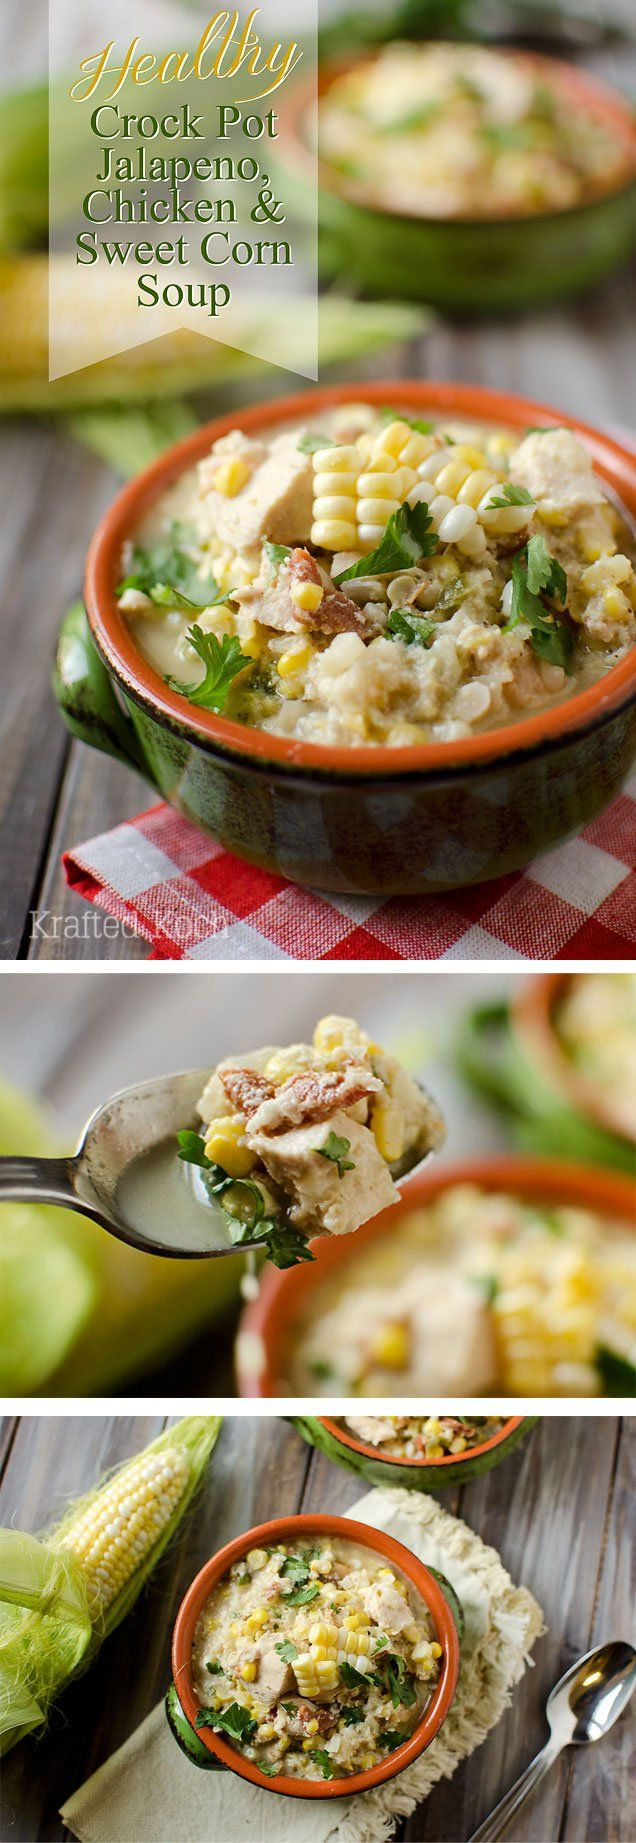 Healthy Crock Pot Jalapeno, Chicken & Sweet Corn Soup is a light soup recipe you can make in your slow cooker for a delicious dinner everyone will love! Krafted Koch #Soup #Recipe #Healthy